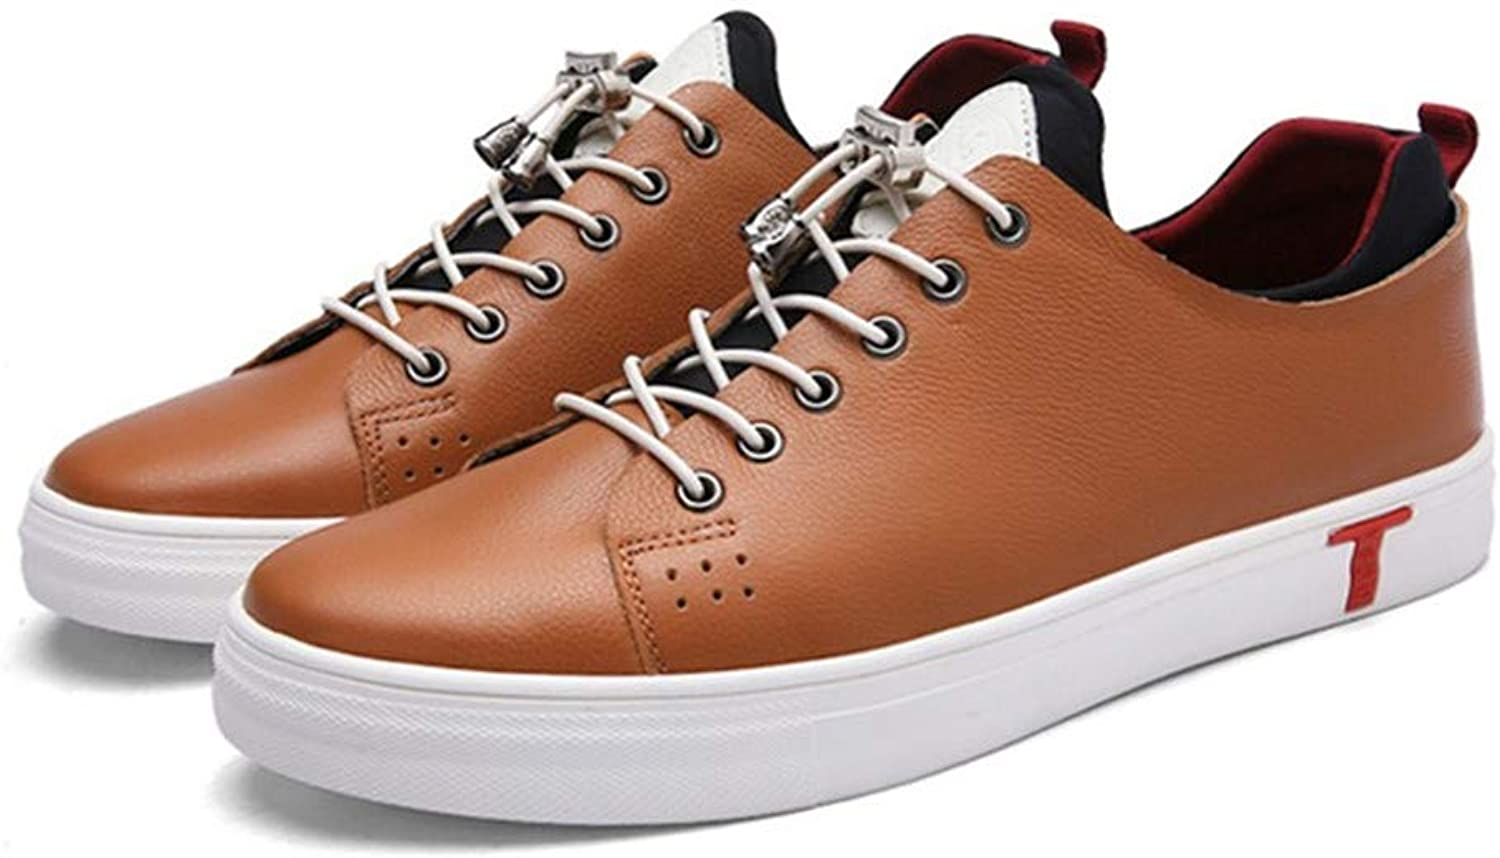 Casual Men's shoes Leather Size 24.0cm to 27.0cm Brown All Seasons Wear Board shoes Leisure